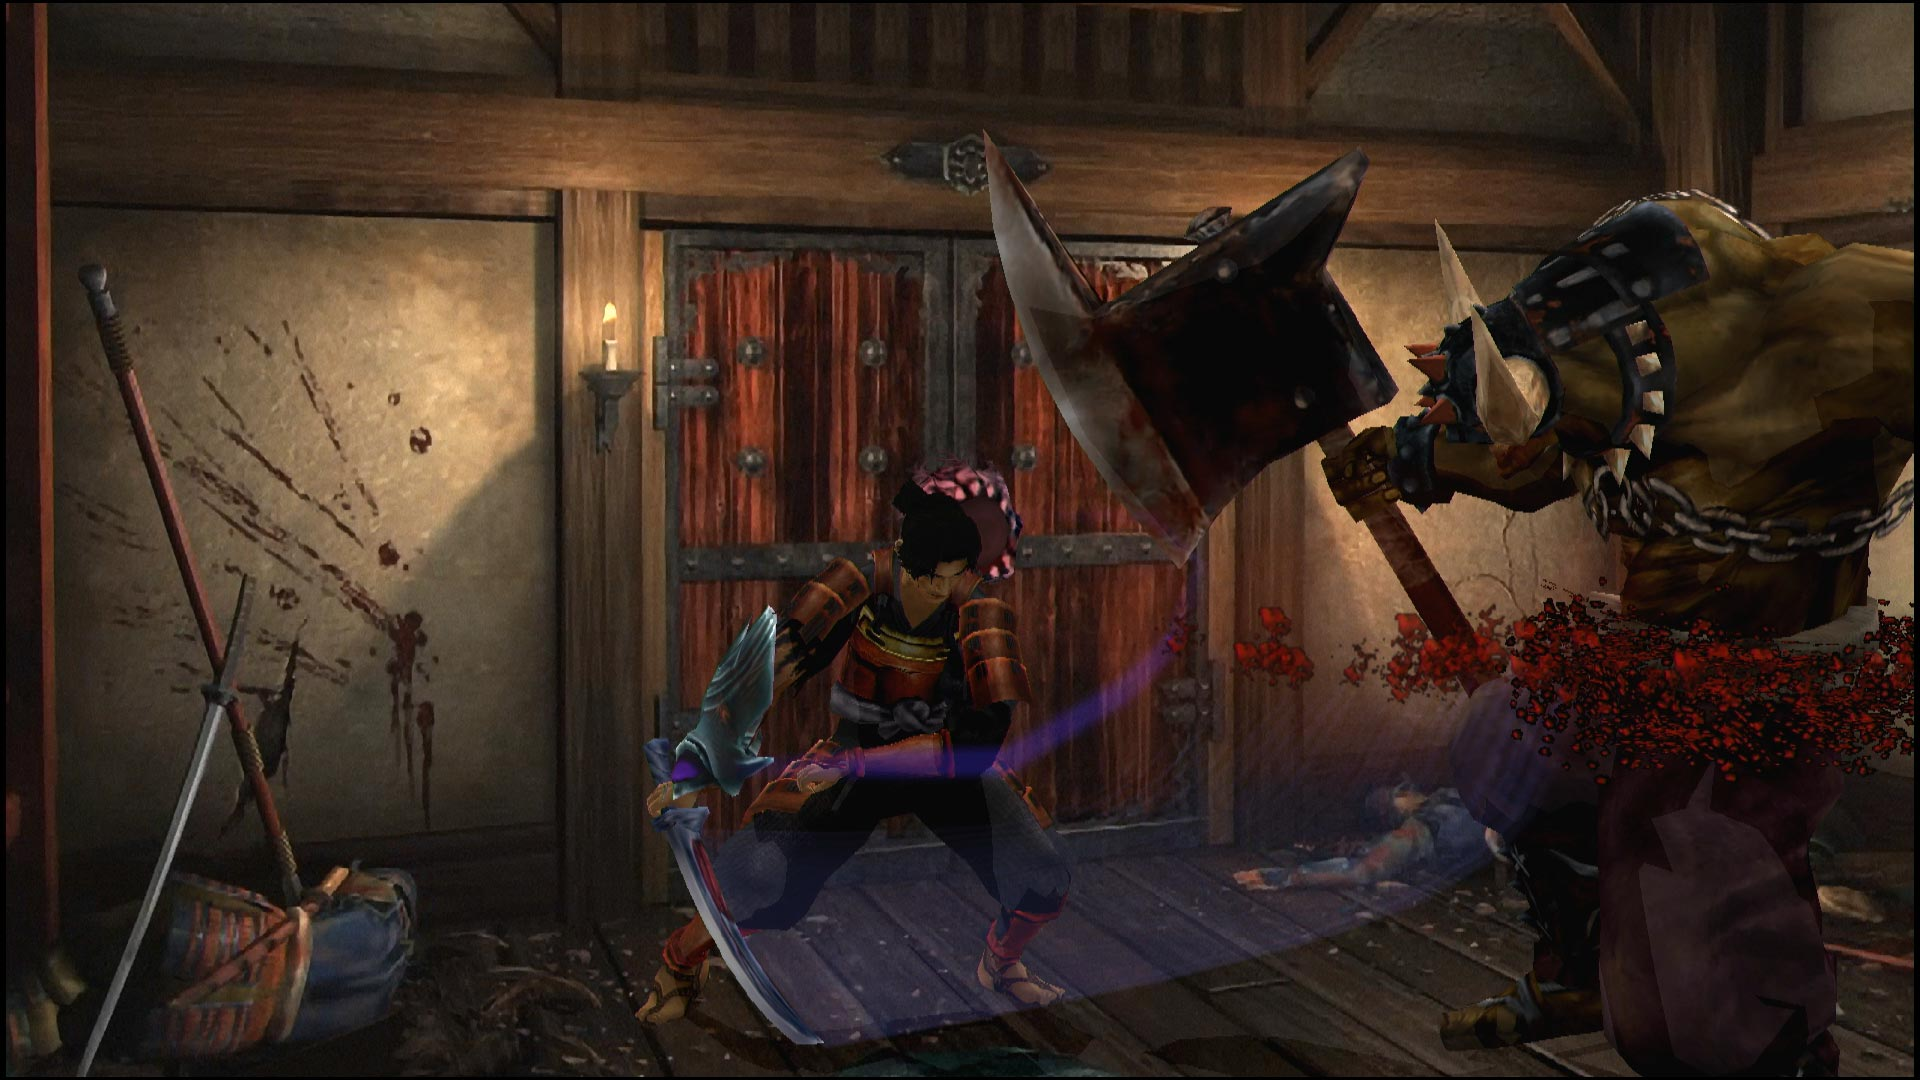 onimusha steam